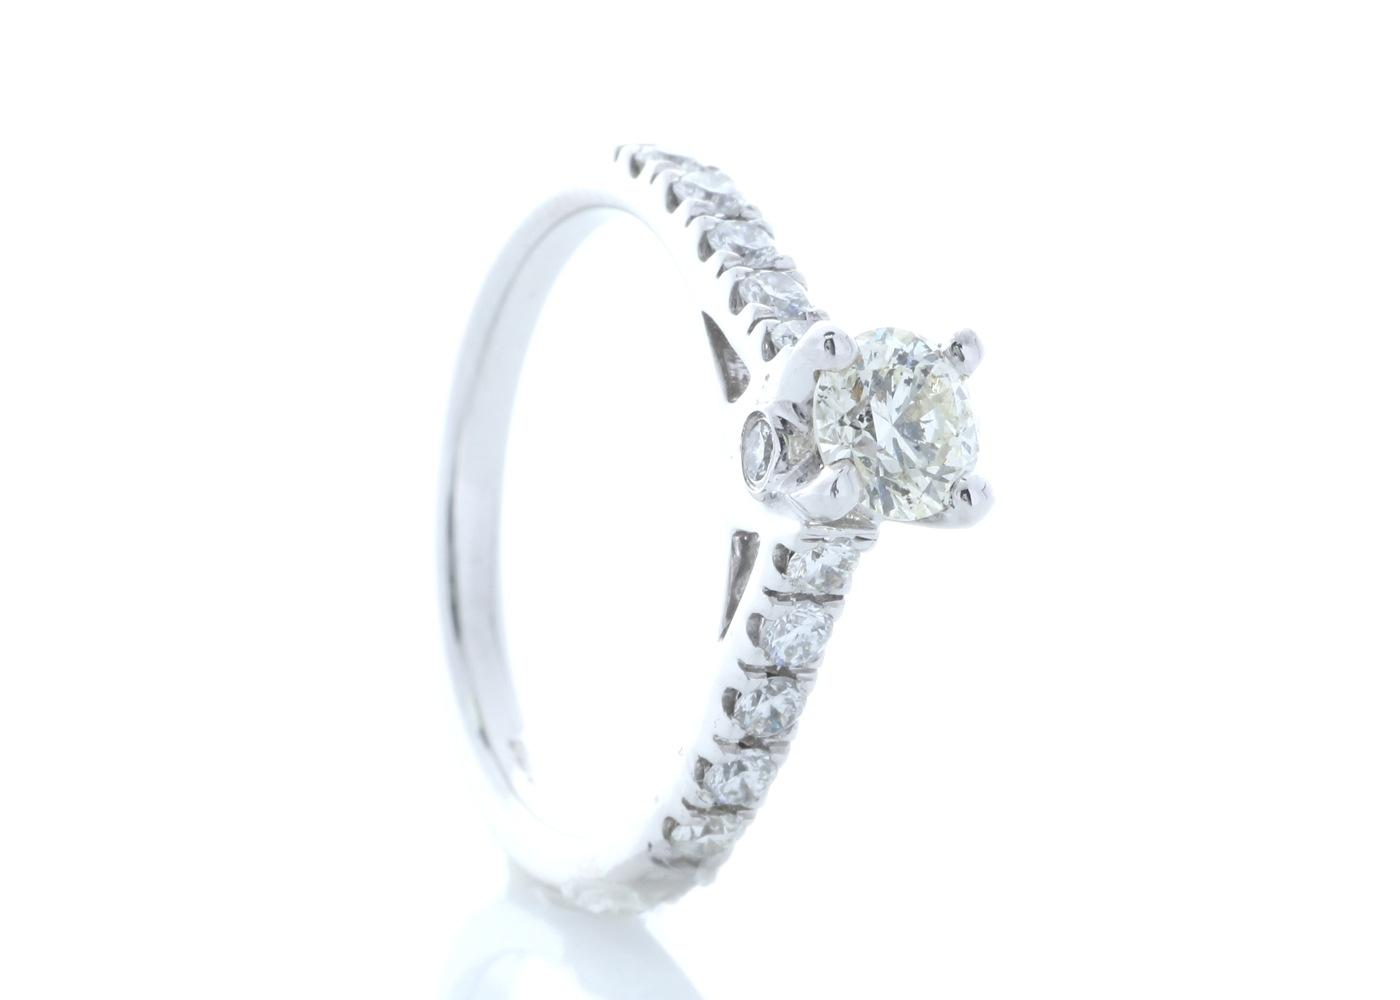 Lot 25 - 18ct White Gold Stone Set Shoulders Diamond Ring 0.91 Carats